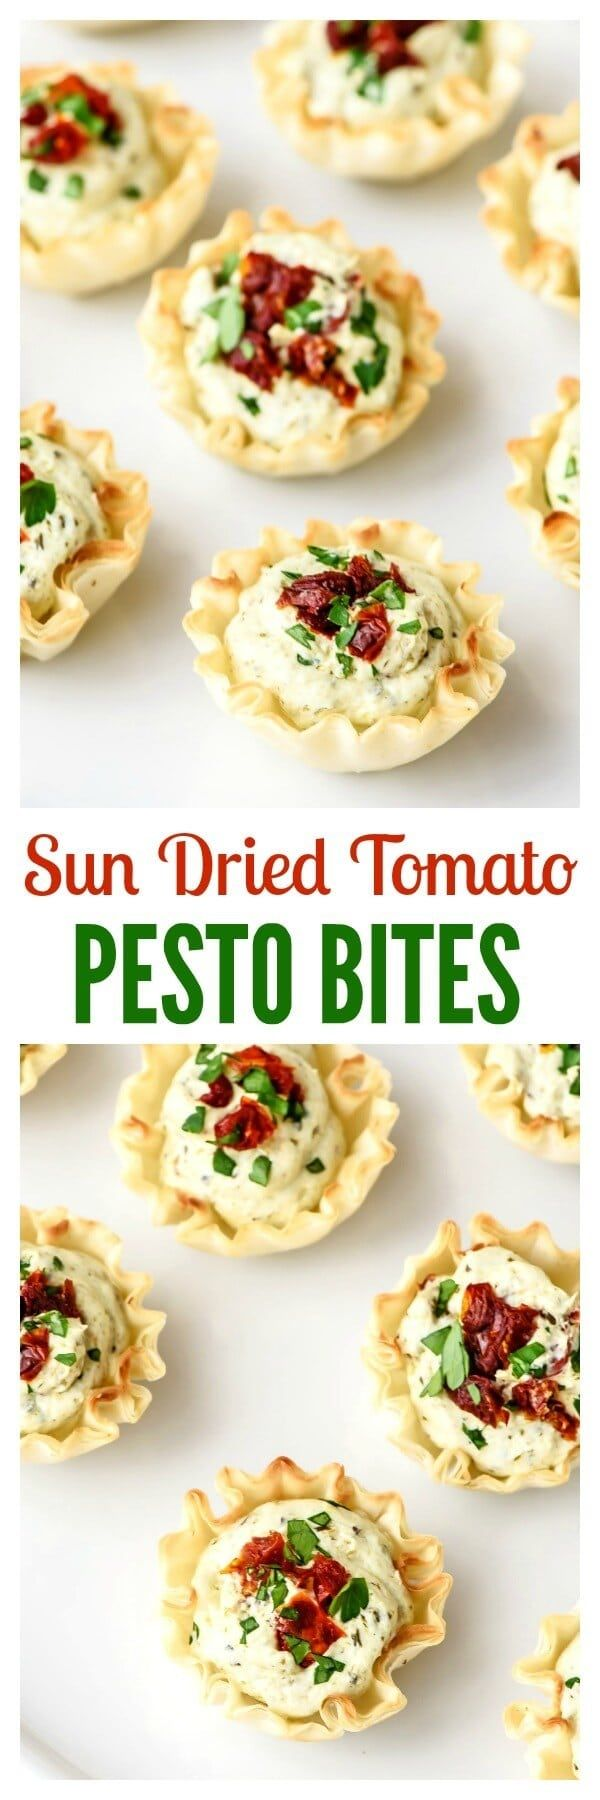 Easy Sun Dried Tomato Pesto Bites. Flakey pesto cream cheese stuffed shells with Parmesan and sun dried tomatoes. A delicious appetizer recipe for any party!